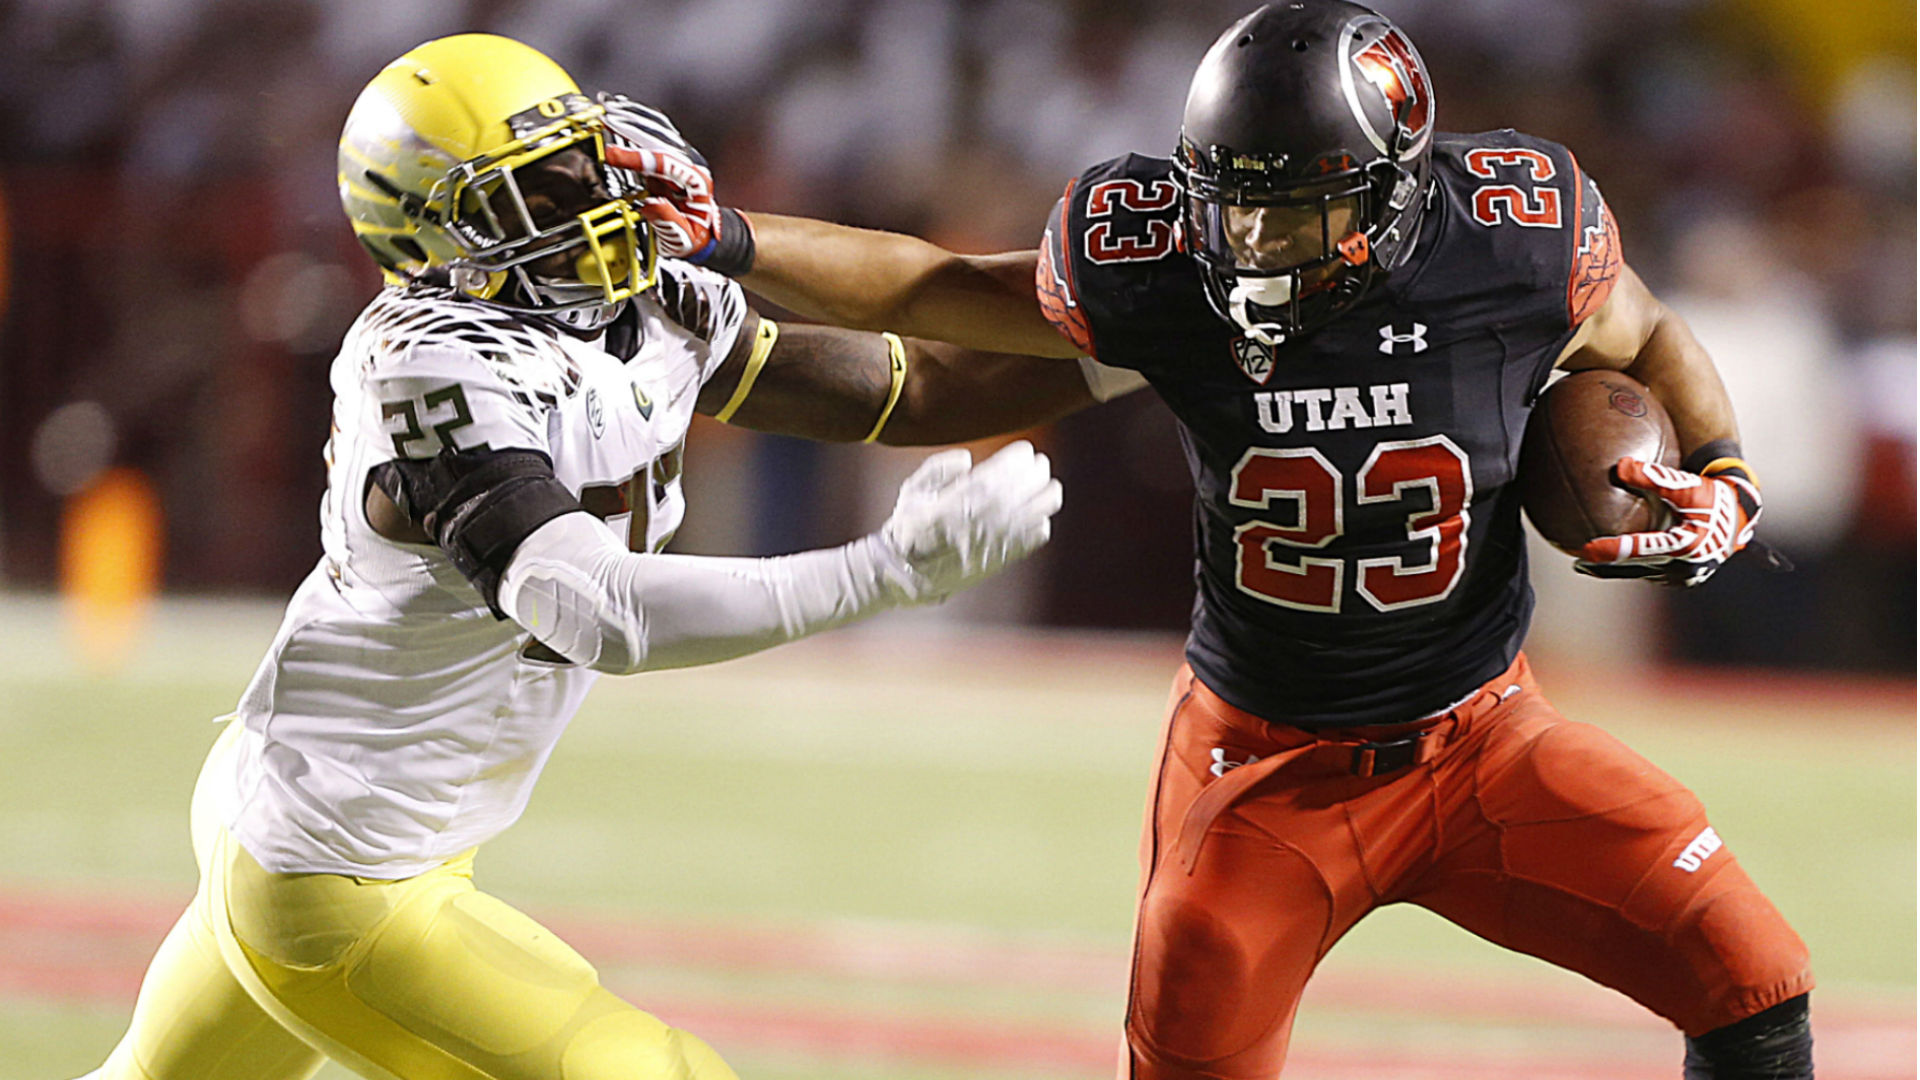 Utah vs. Colorado State betting preview and pick – Early money on dog in Las Vegas Bowl